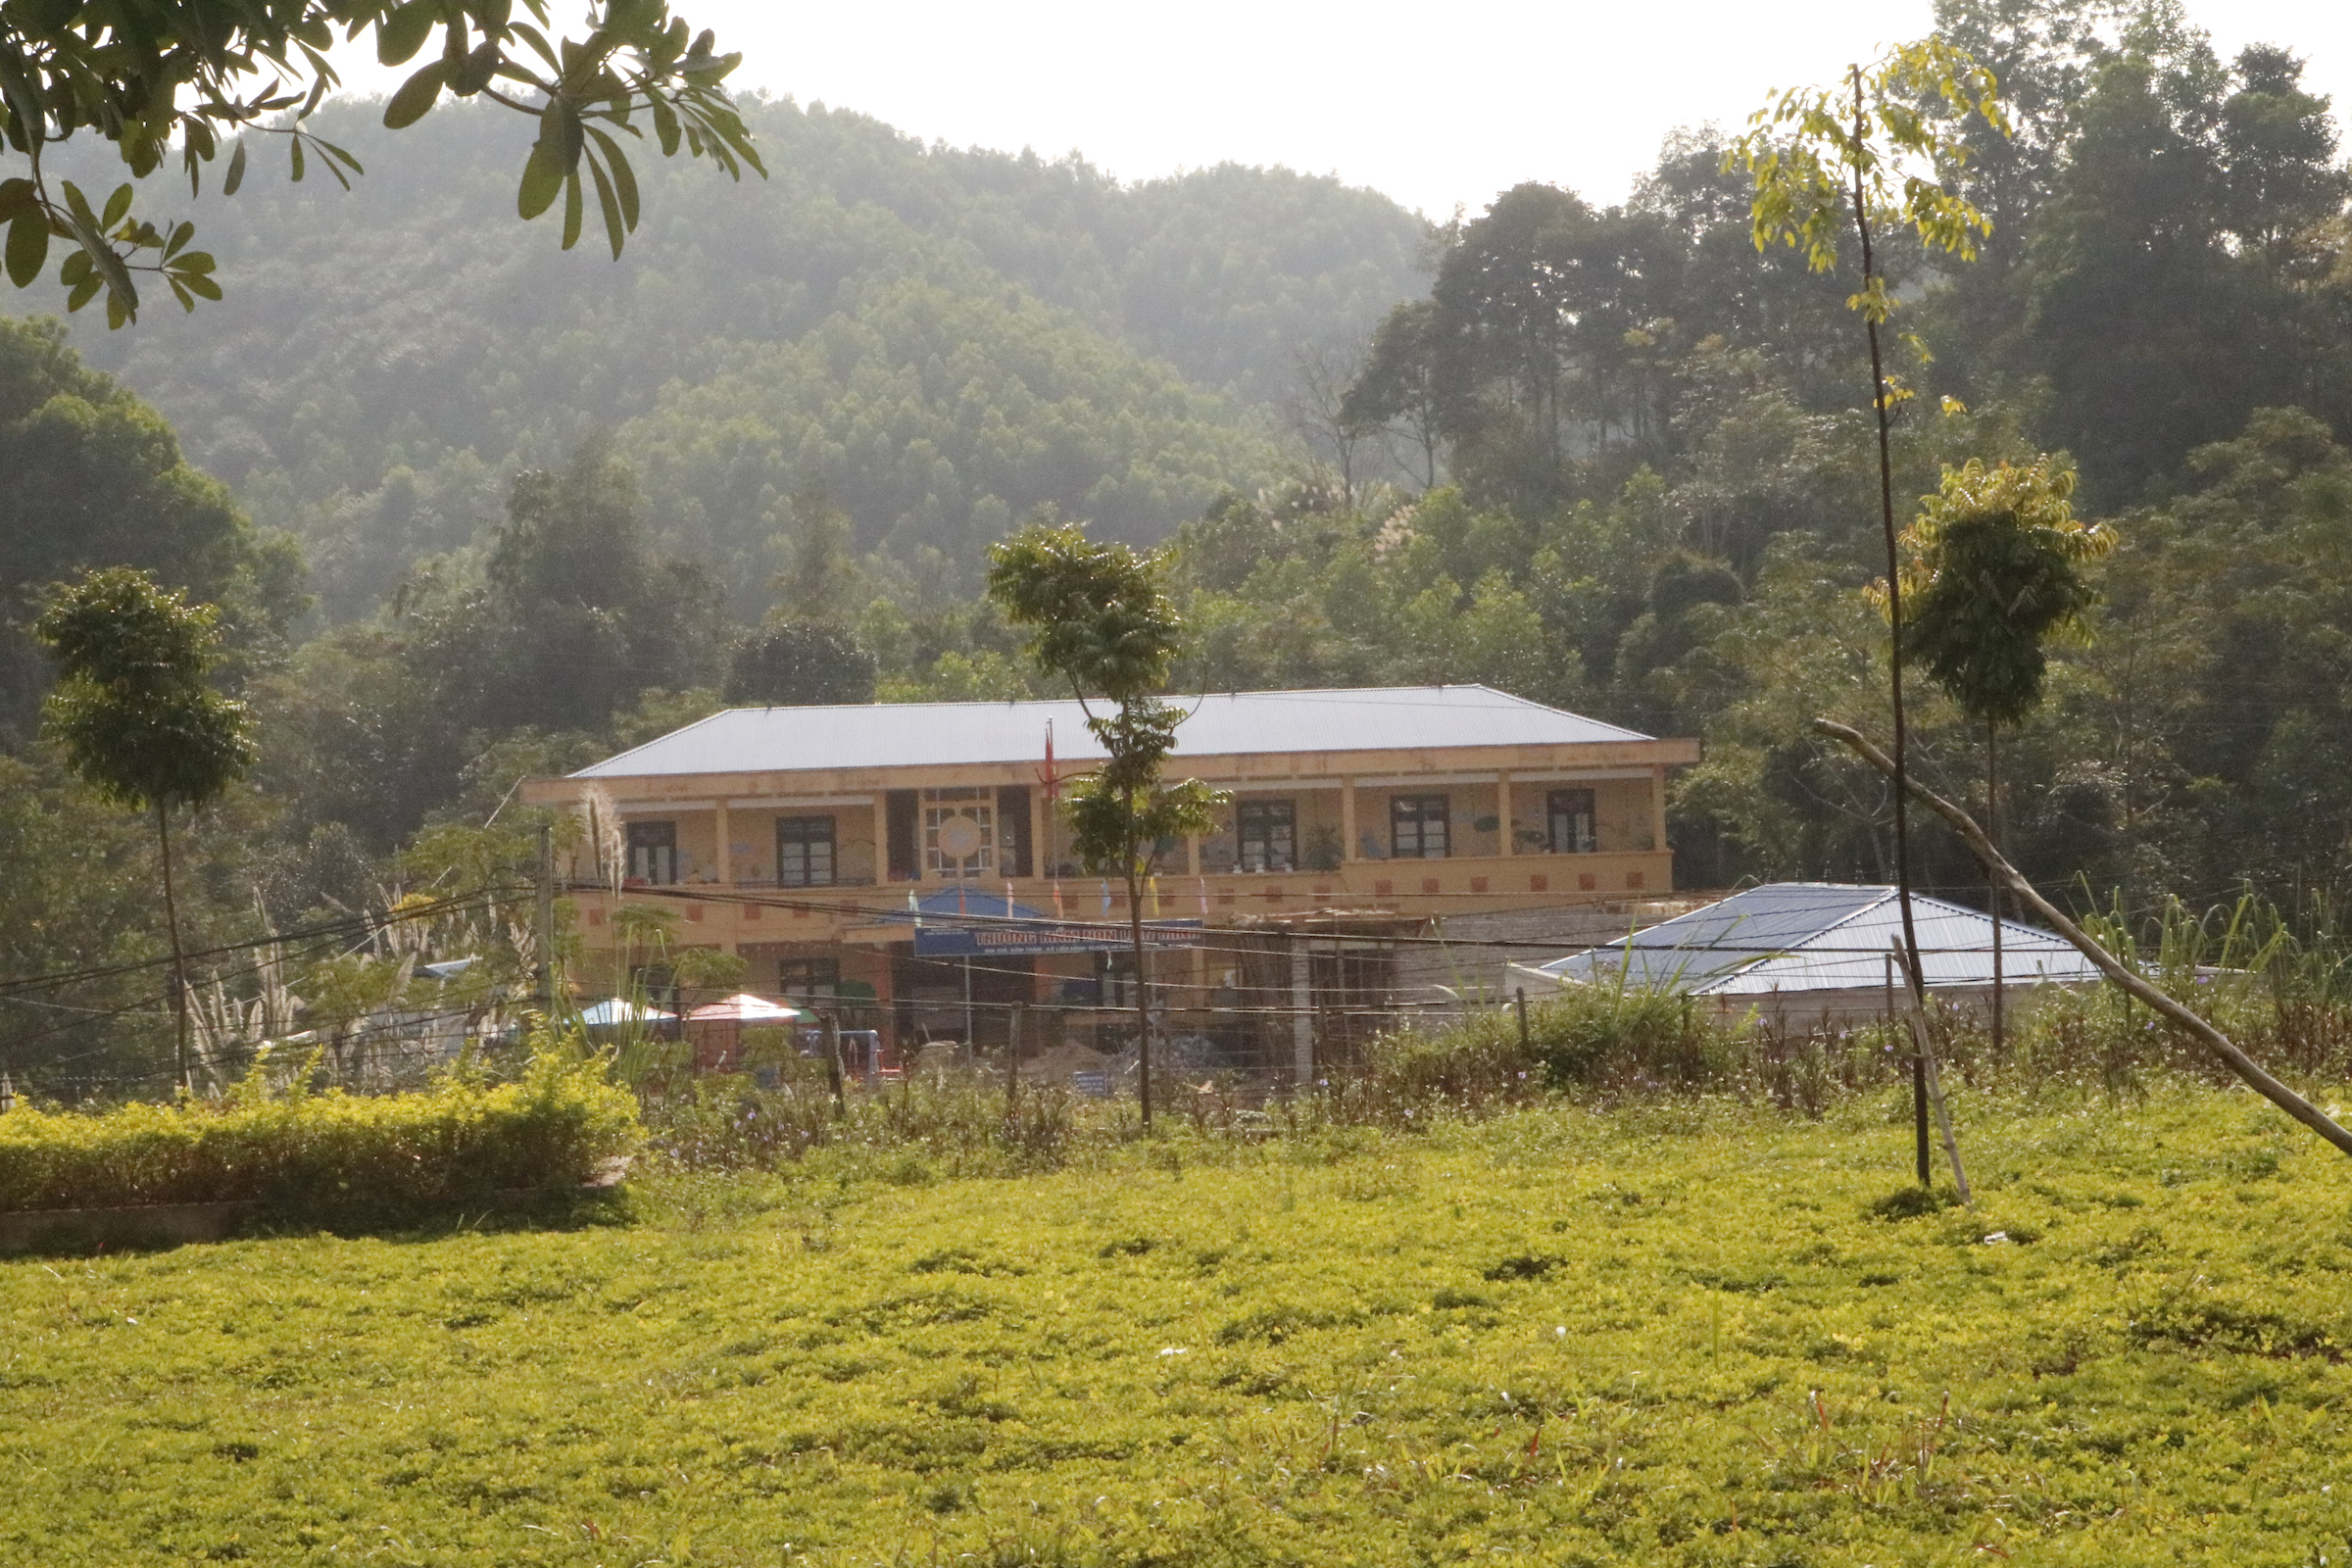 Building in Lien Minh, Vietnam in the distance with green grass in the foreground and lush forest in the background